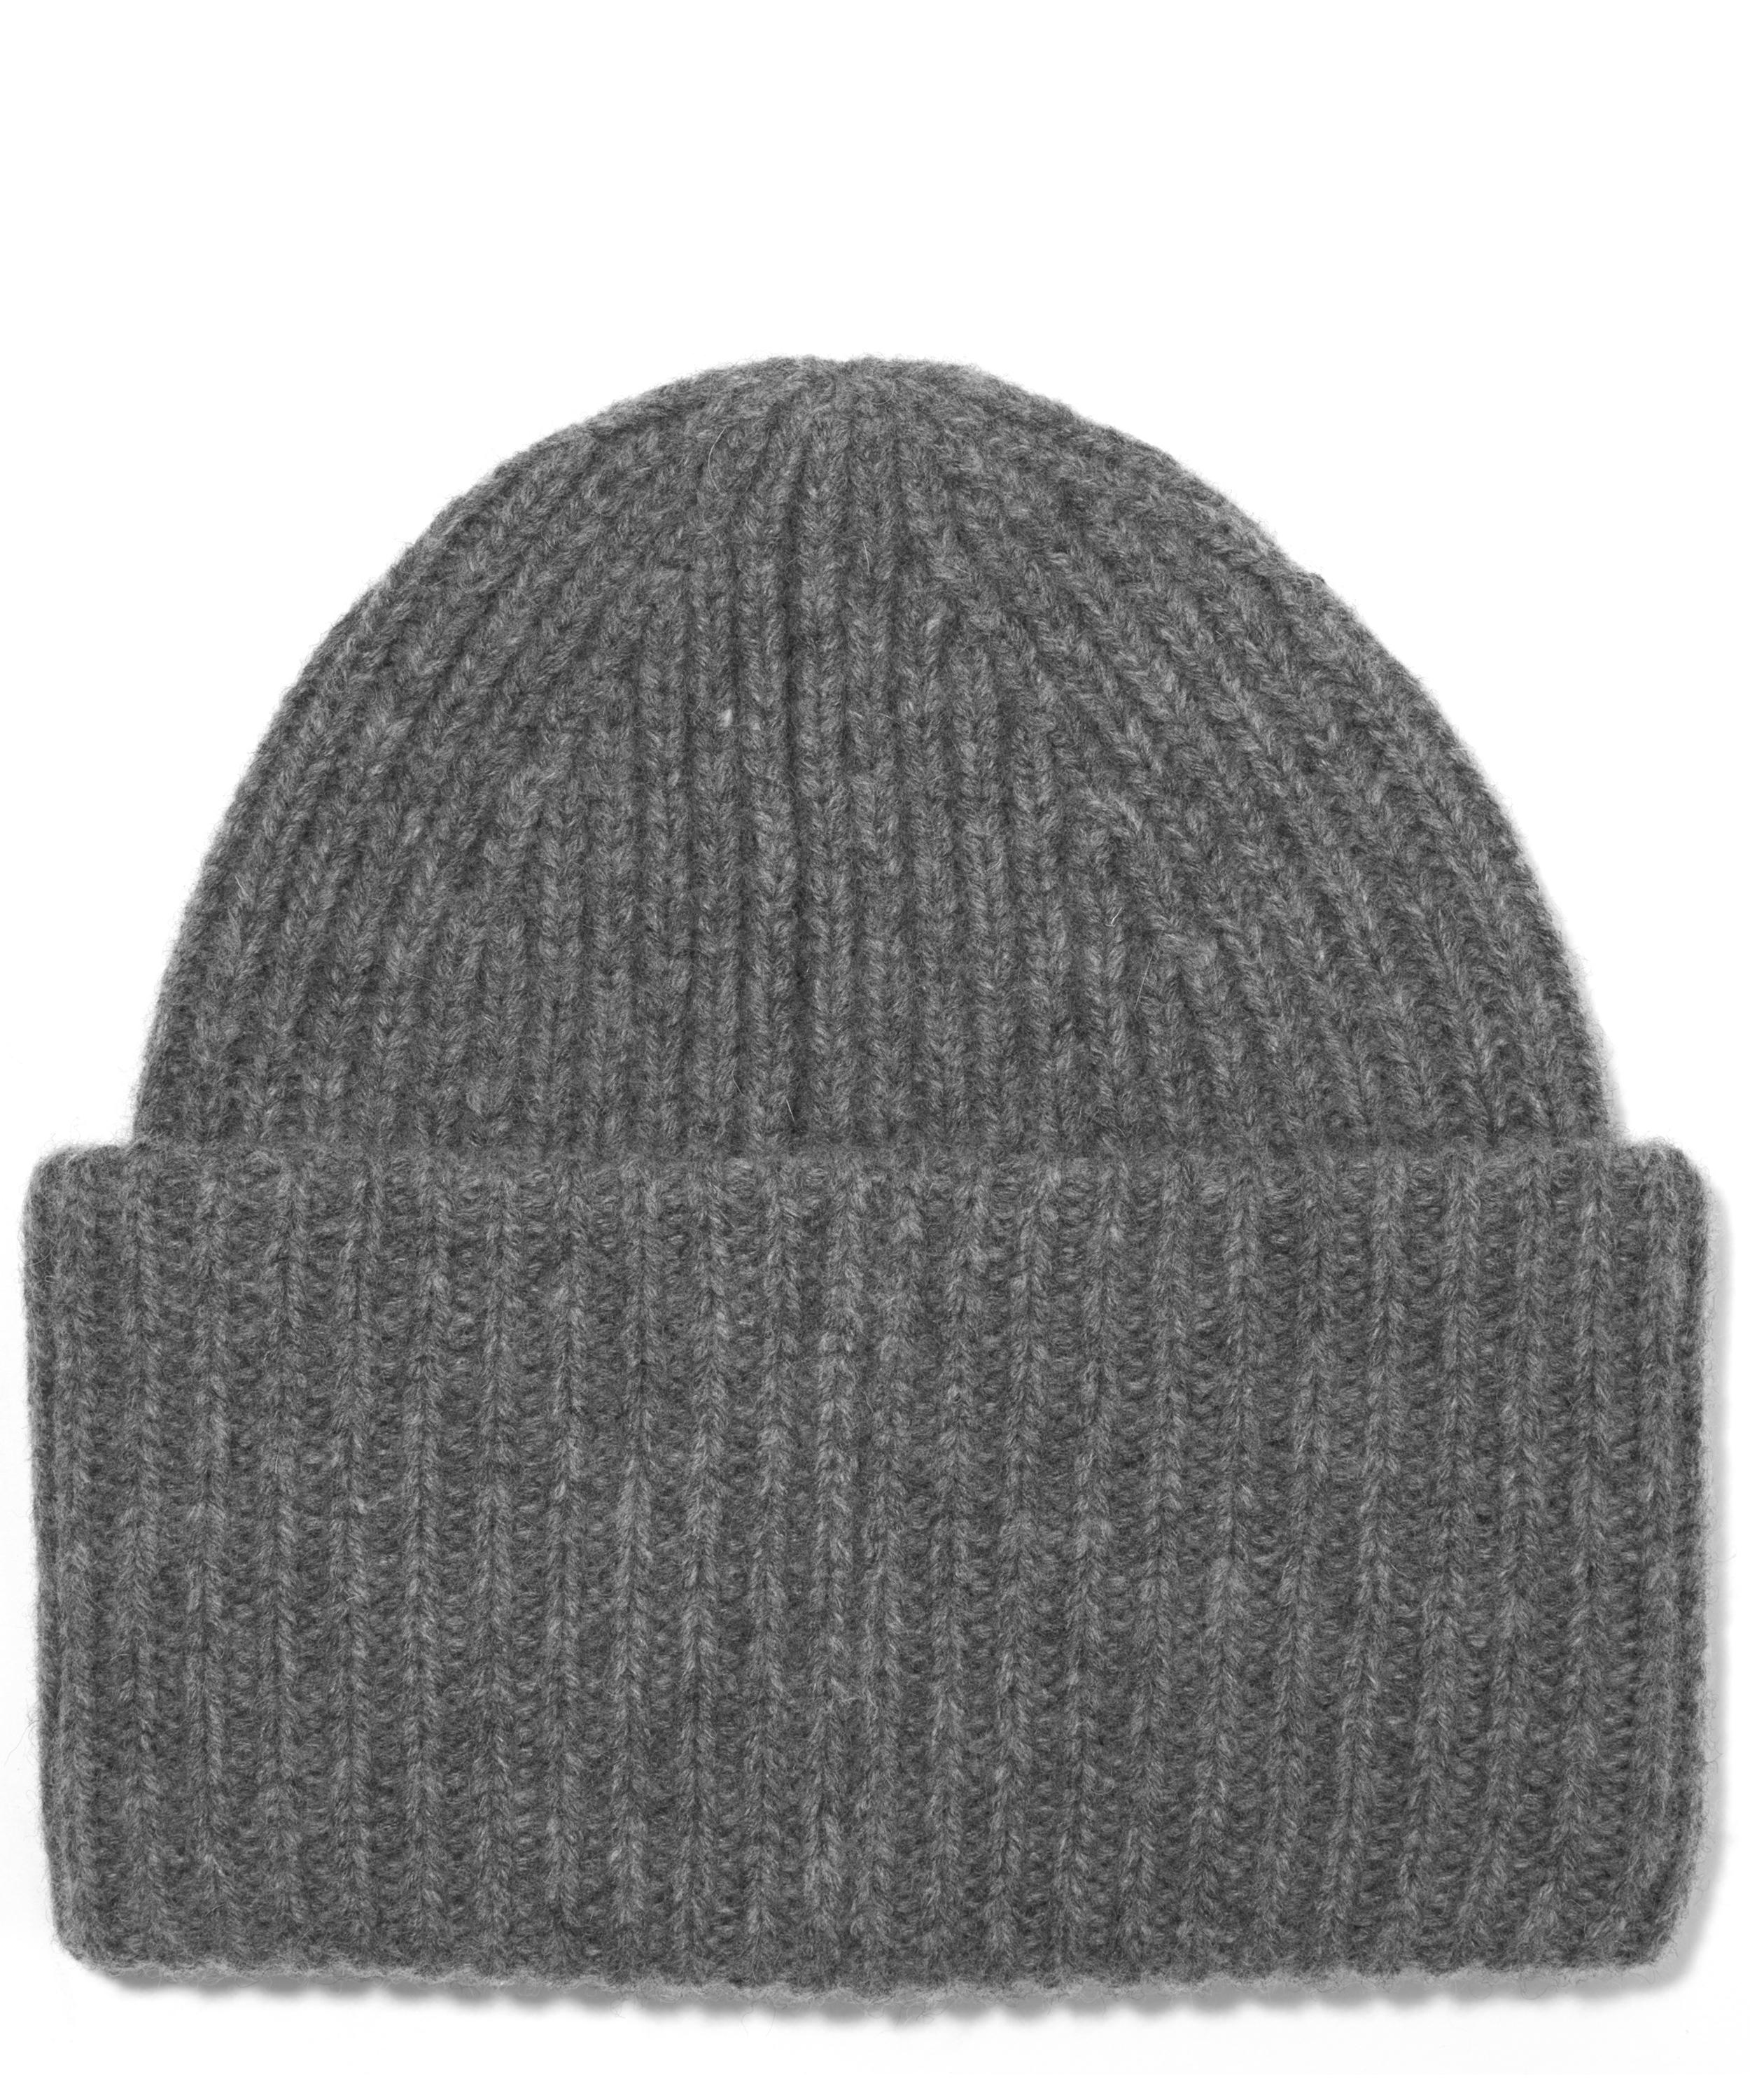 Acne Studios Ribbed Wool Pansy Beanie Hat in Gray for Men - Lyst 7eb8dc2cc4e7